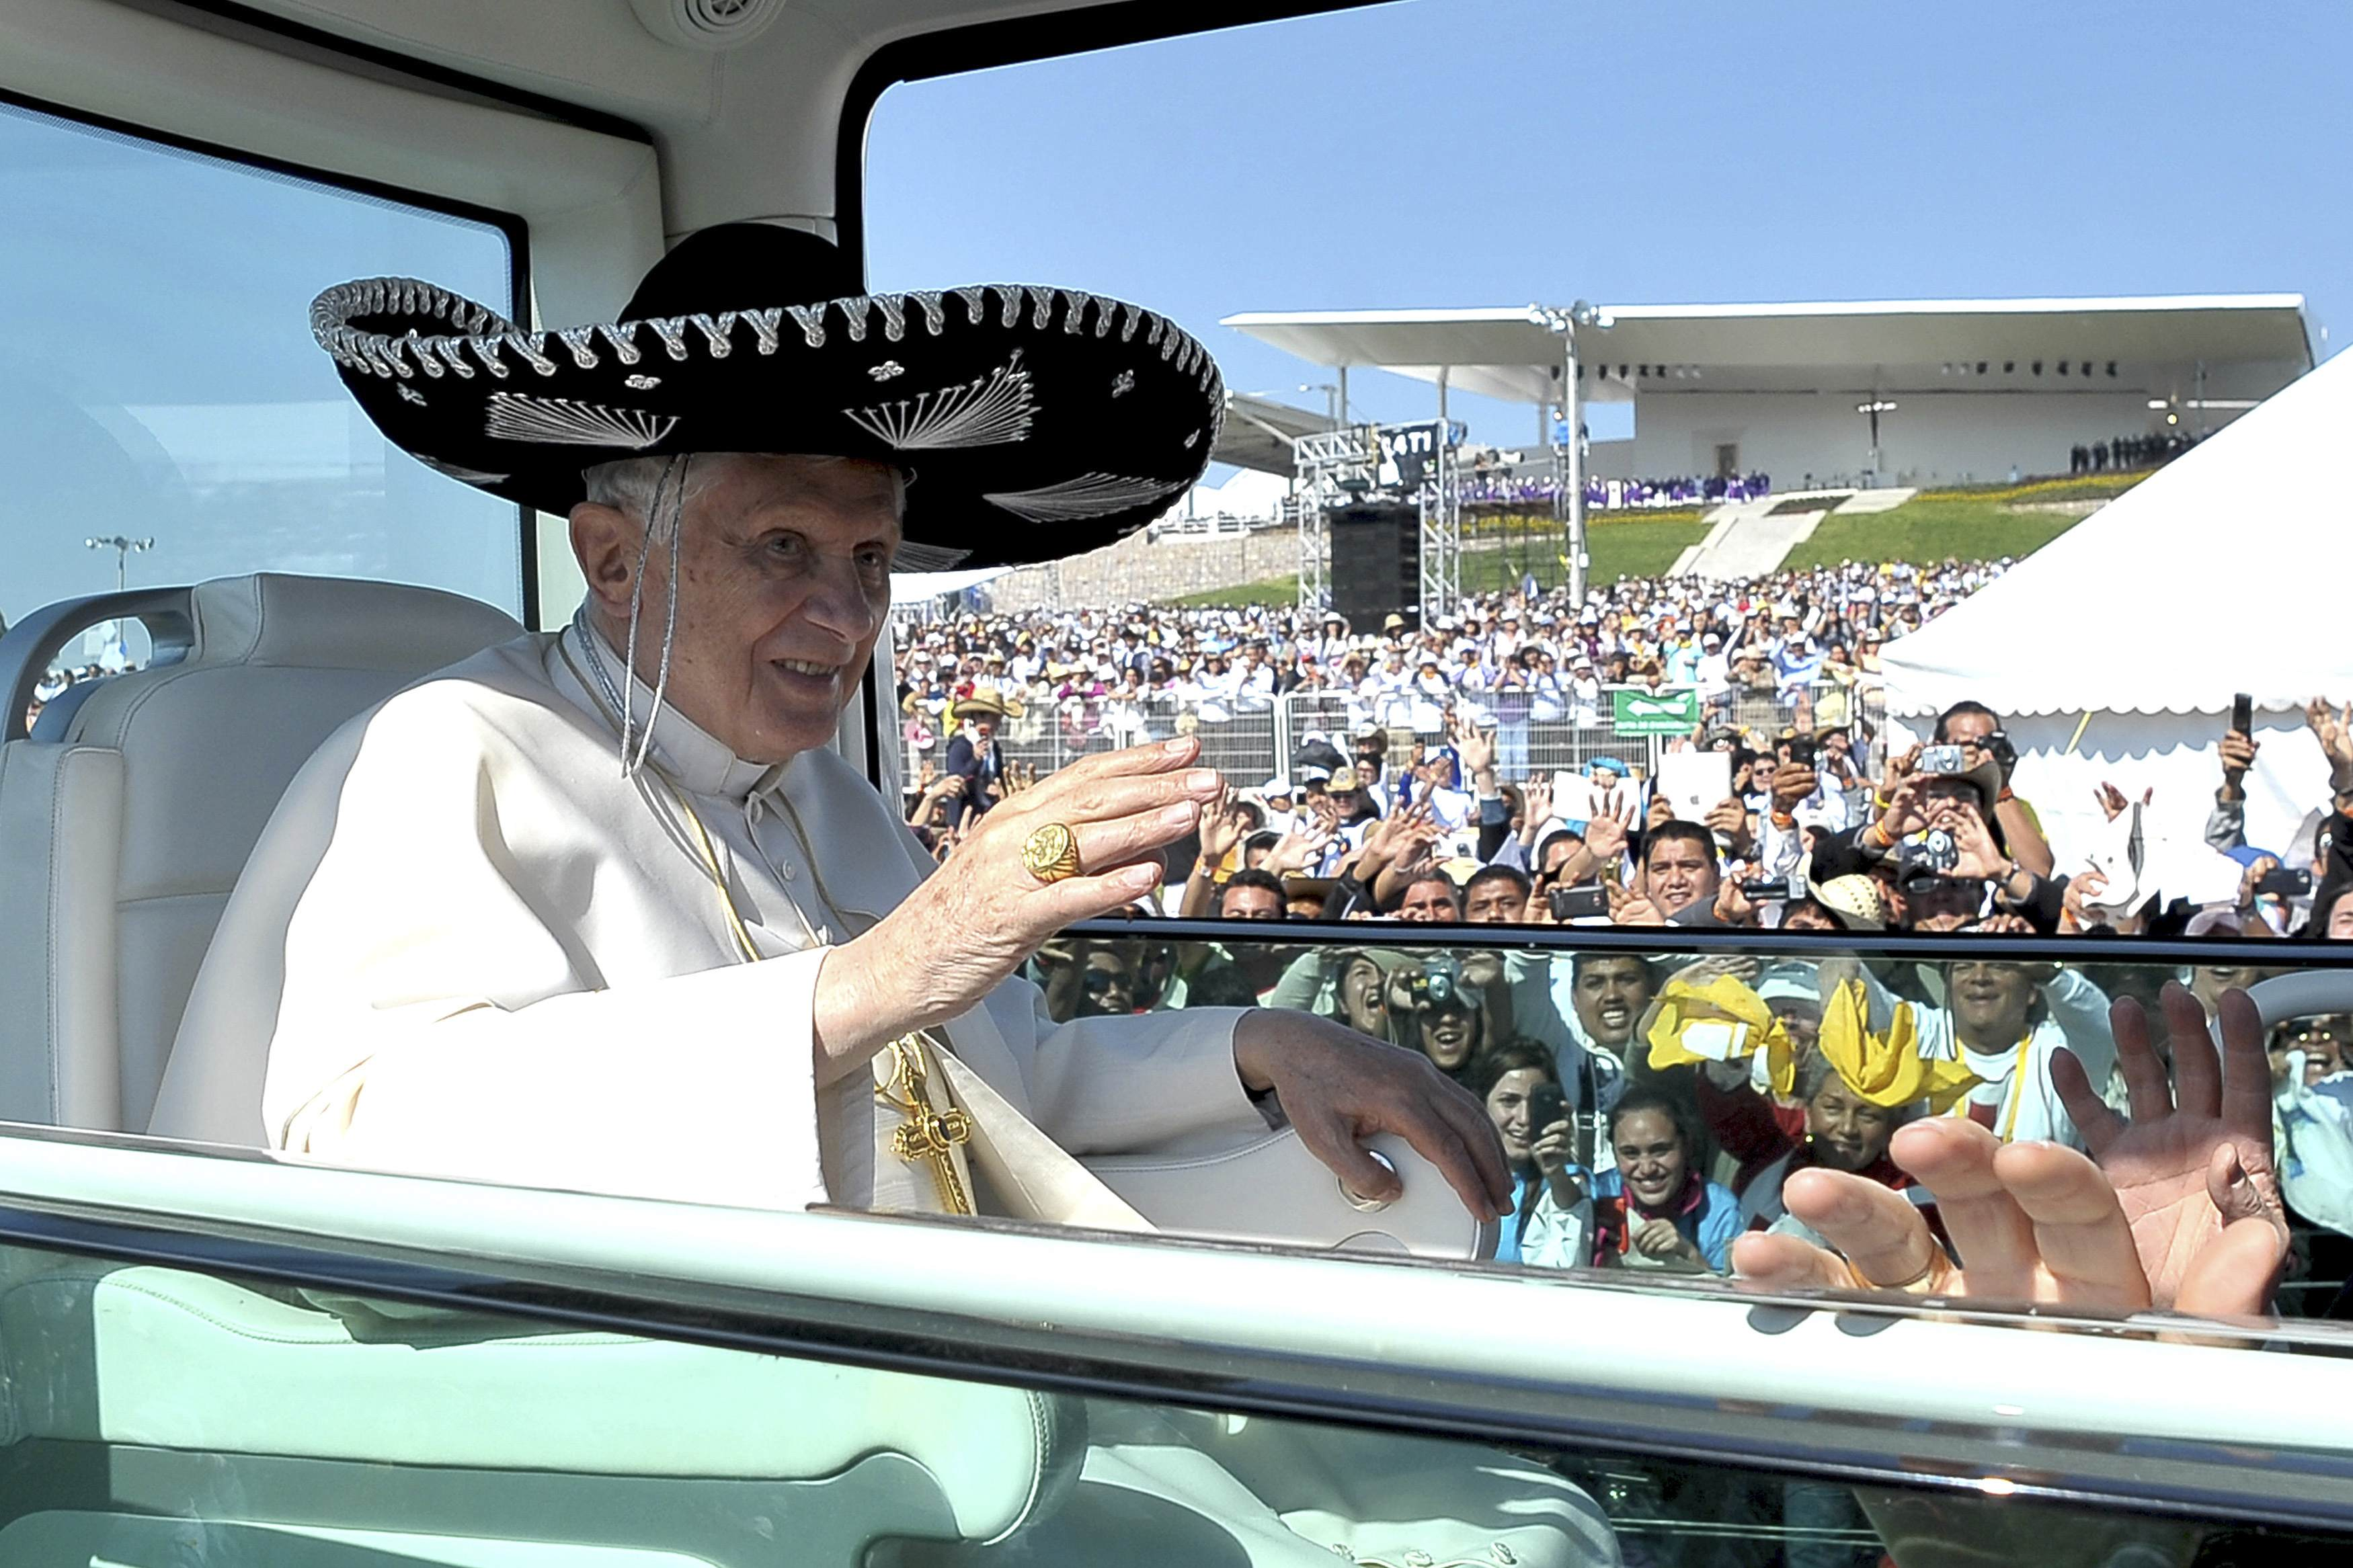 Pope puts on sombrero in Mexico (VIDEO)